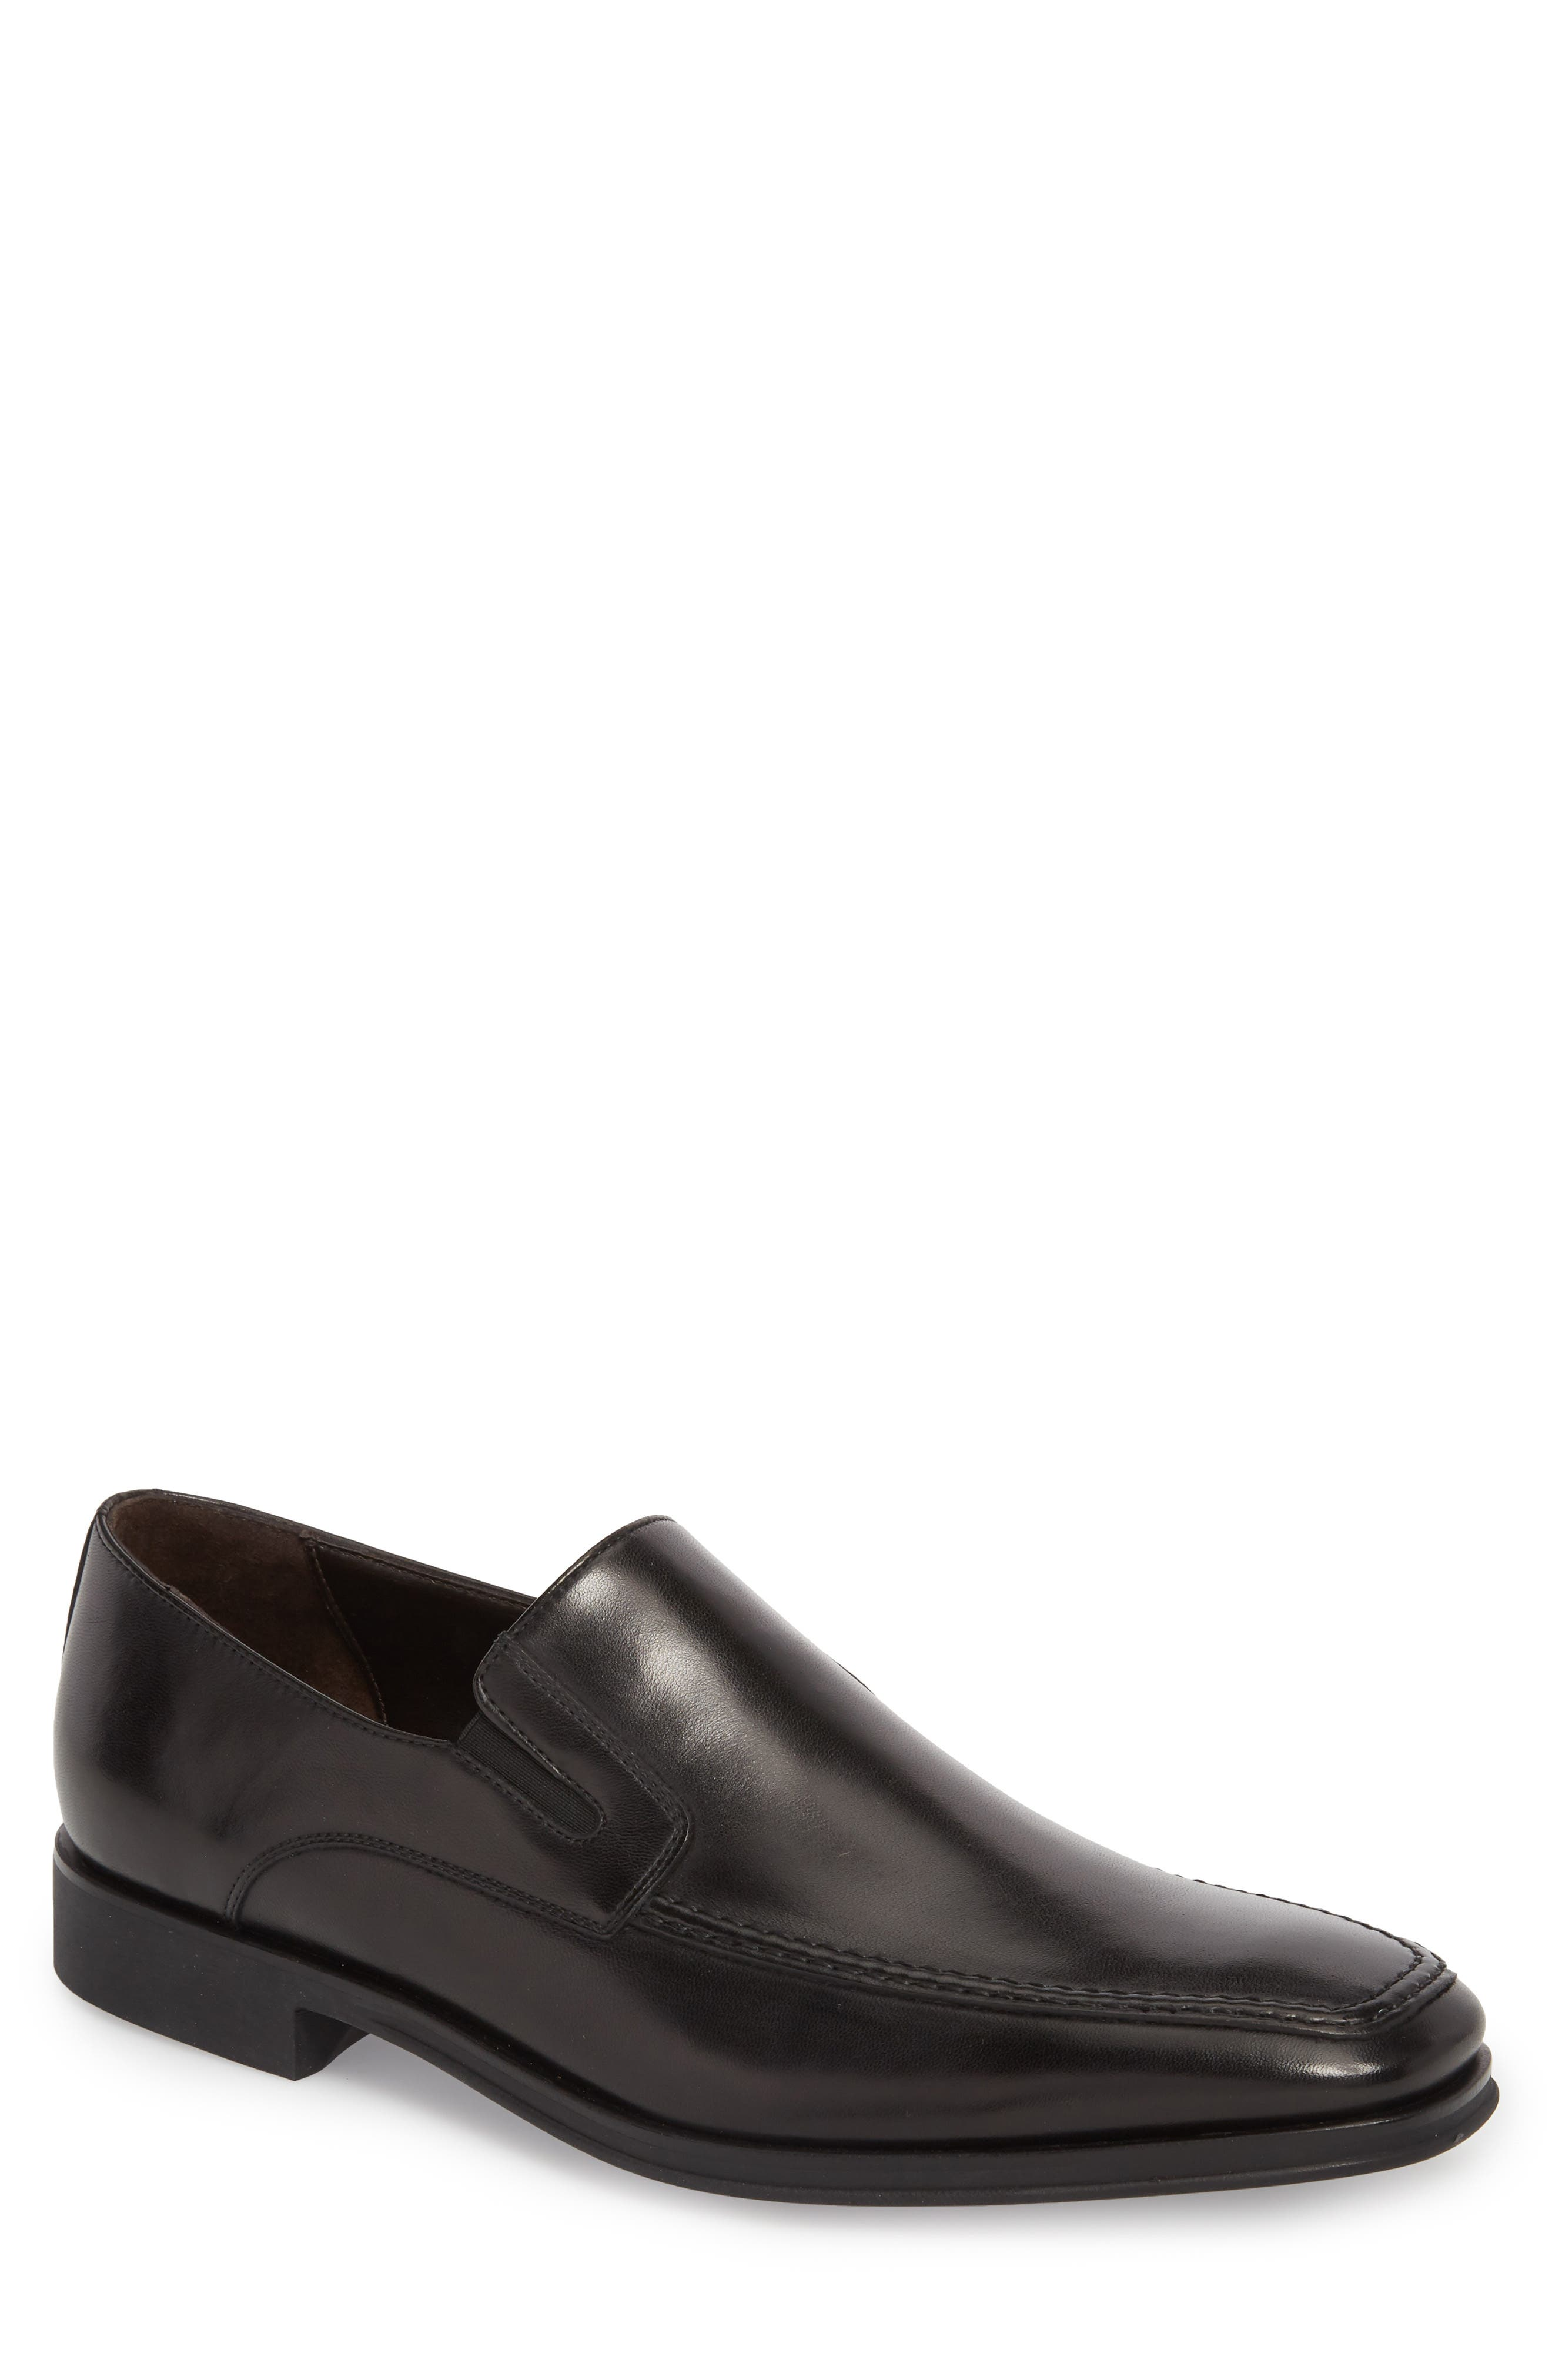 MONTE ROSSO, Lucca Nappa Leather Loafer, Main thumbnail 1, color, BLACK